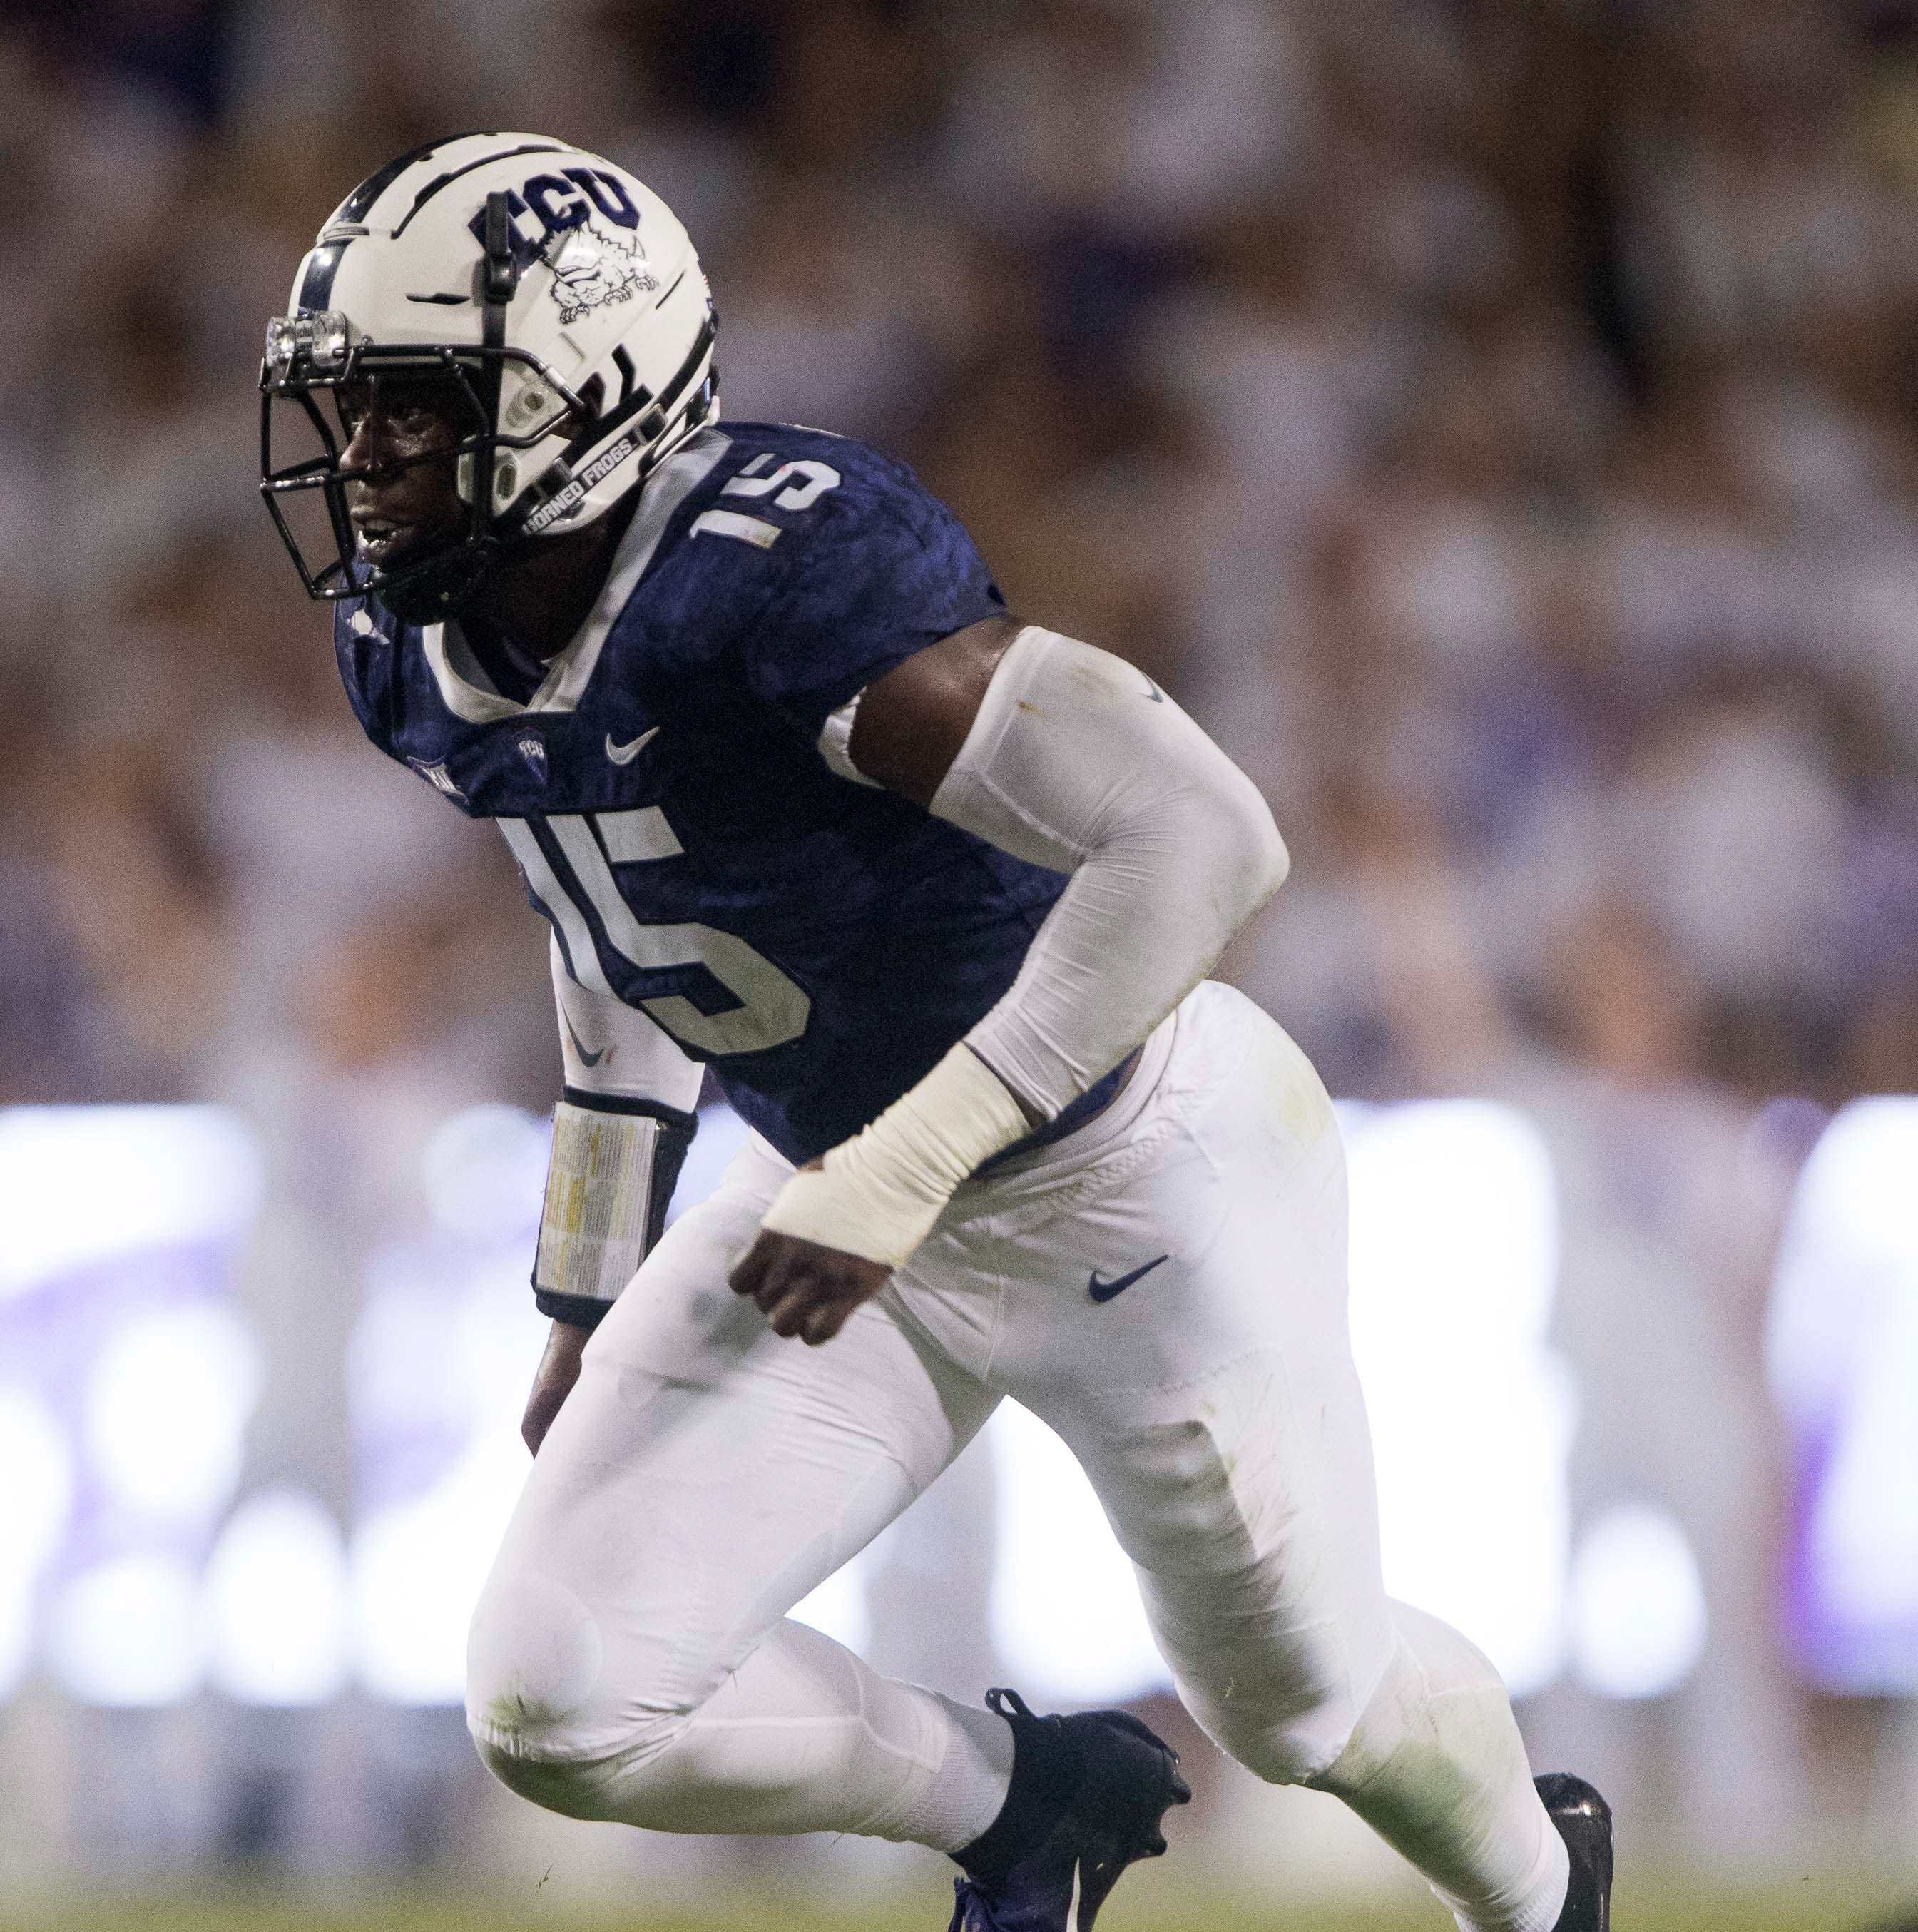 Colts draft TCU pass rusher Ben Banogu at No. 49 to fill new roll on defense